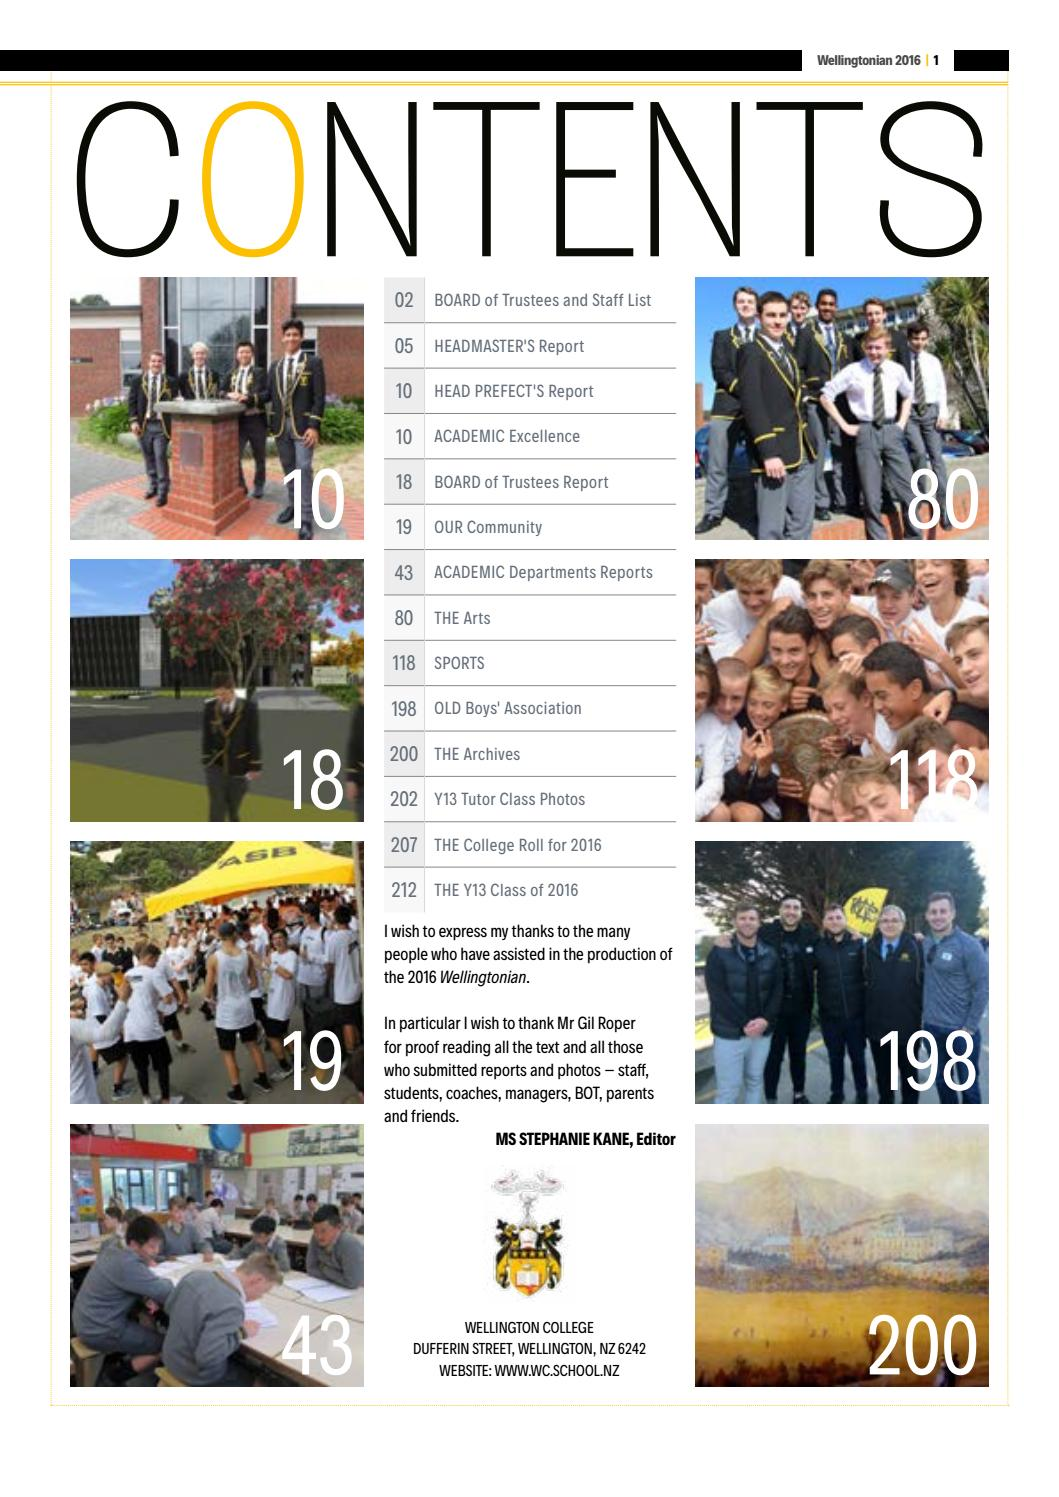 The wellingtonian 2016 by wellington college issuu fandeluxe Image collections